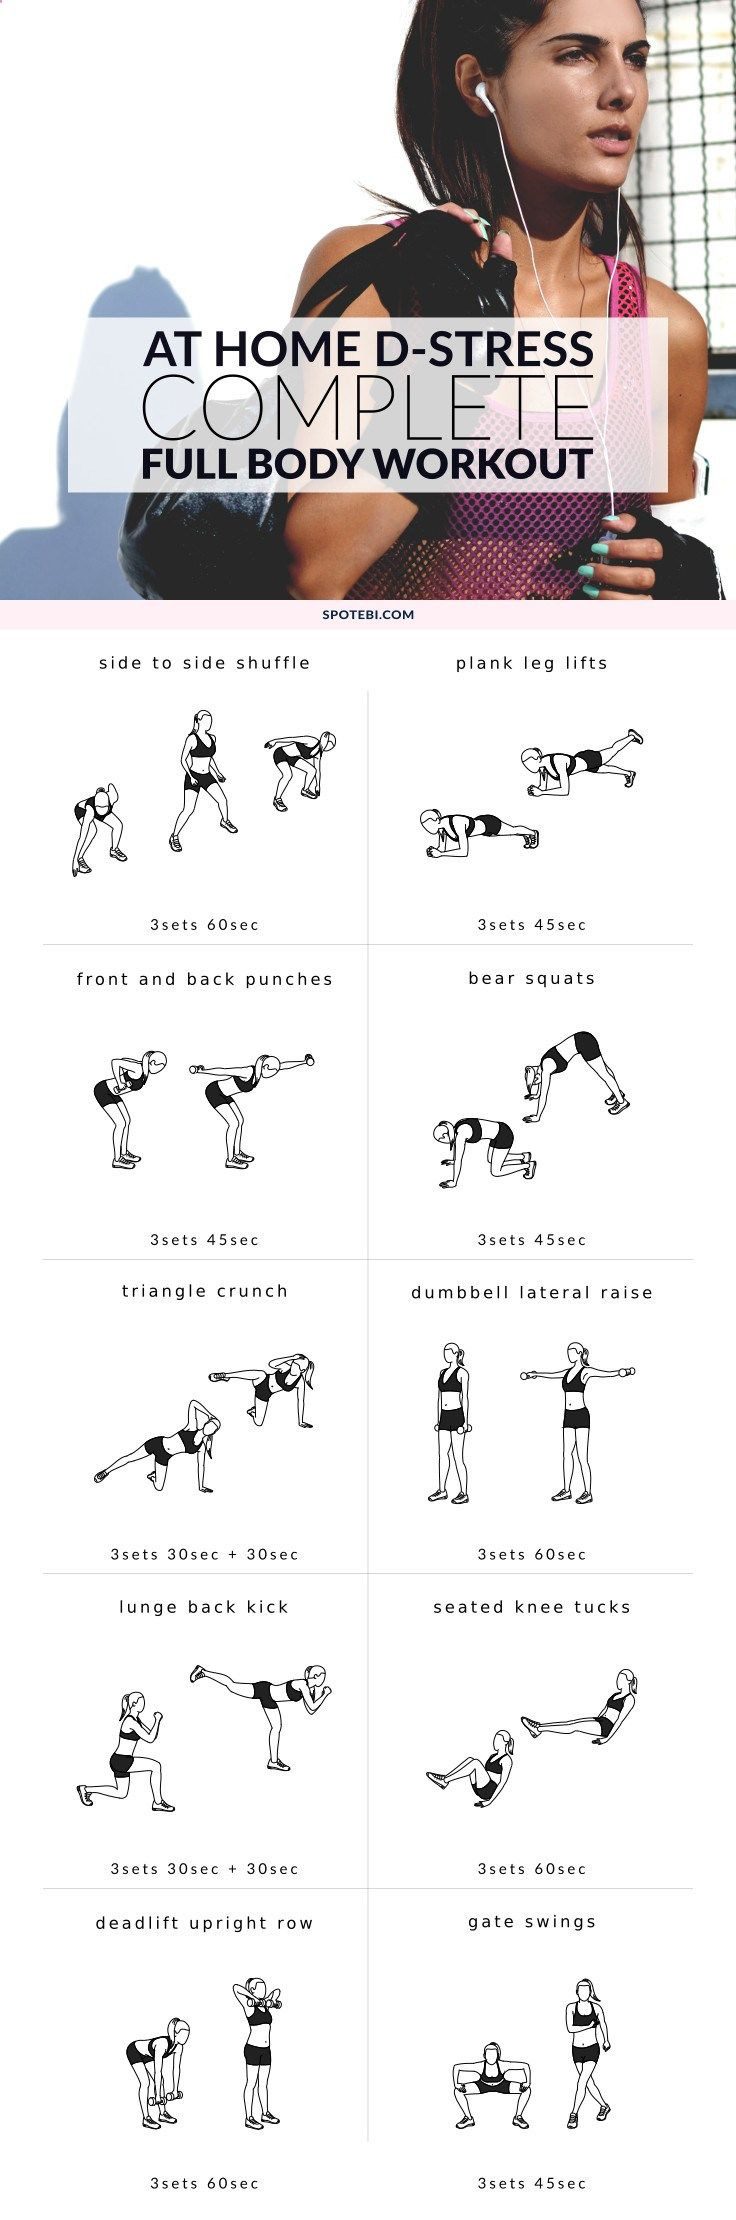 Tone your whole body and burn excess fat with this complete full body workout you can do at home. Grab a set of dumbbells, get in the zone and blast those holiday calories in just 29 minutes! www.spotebi.com/...